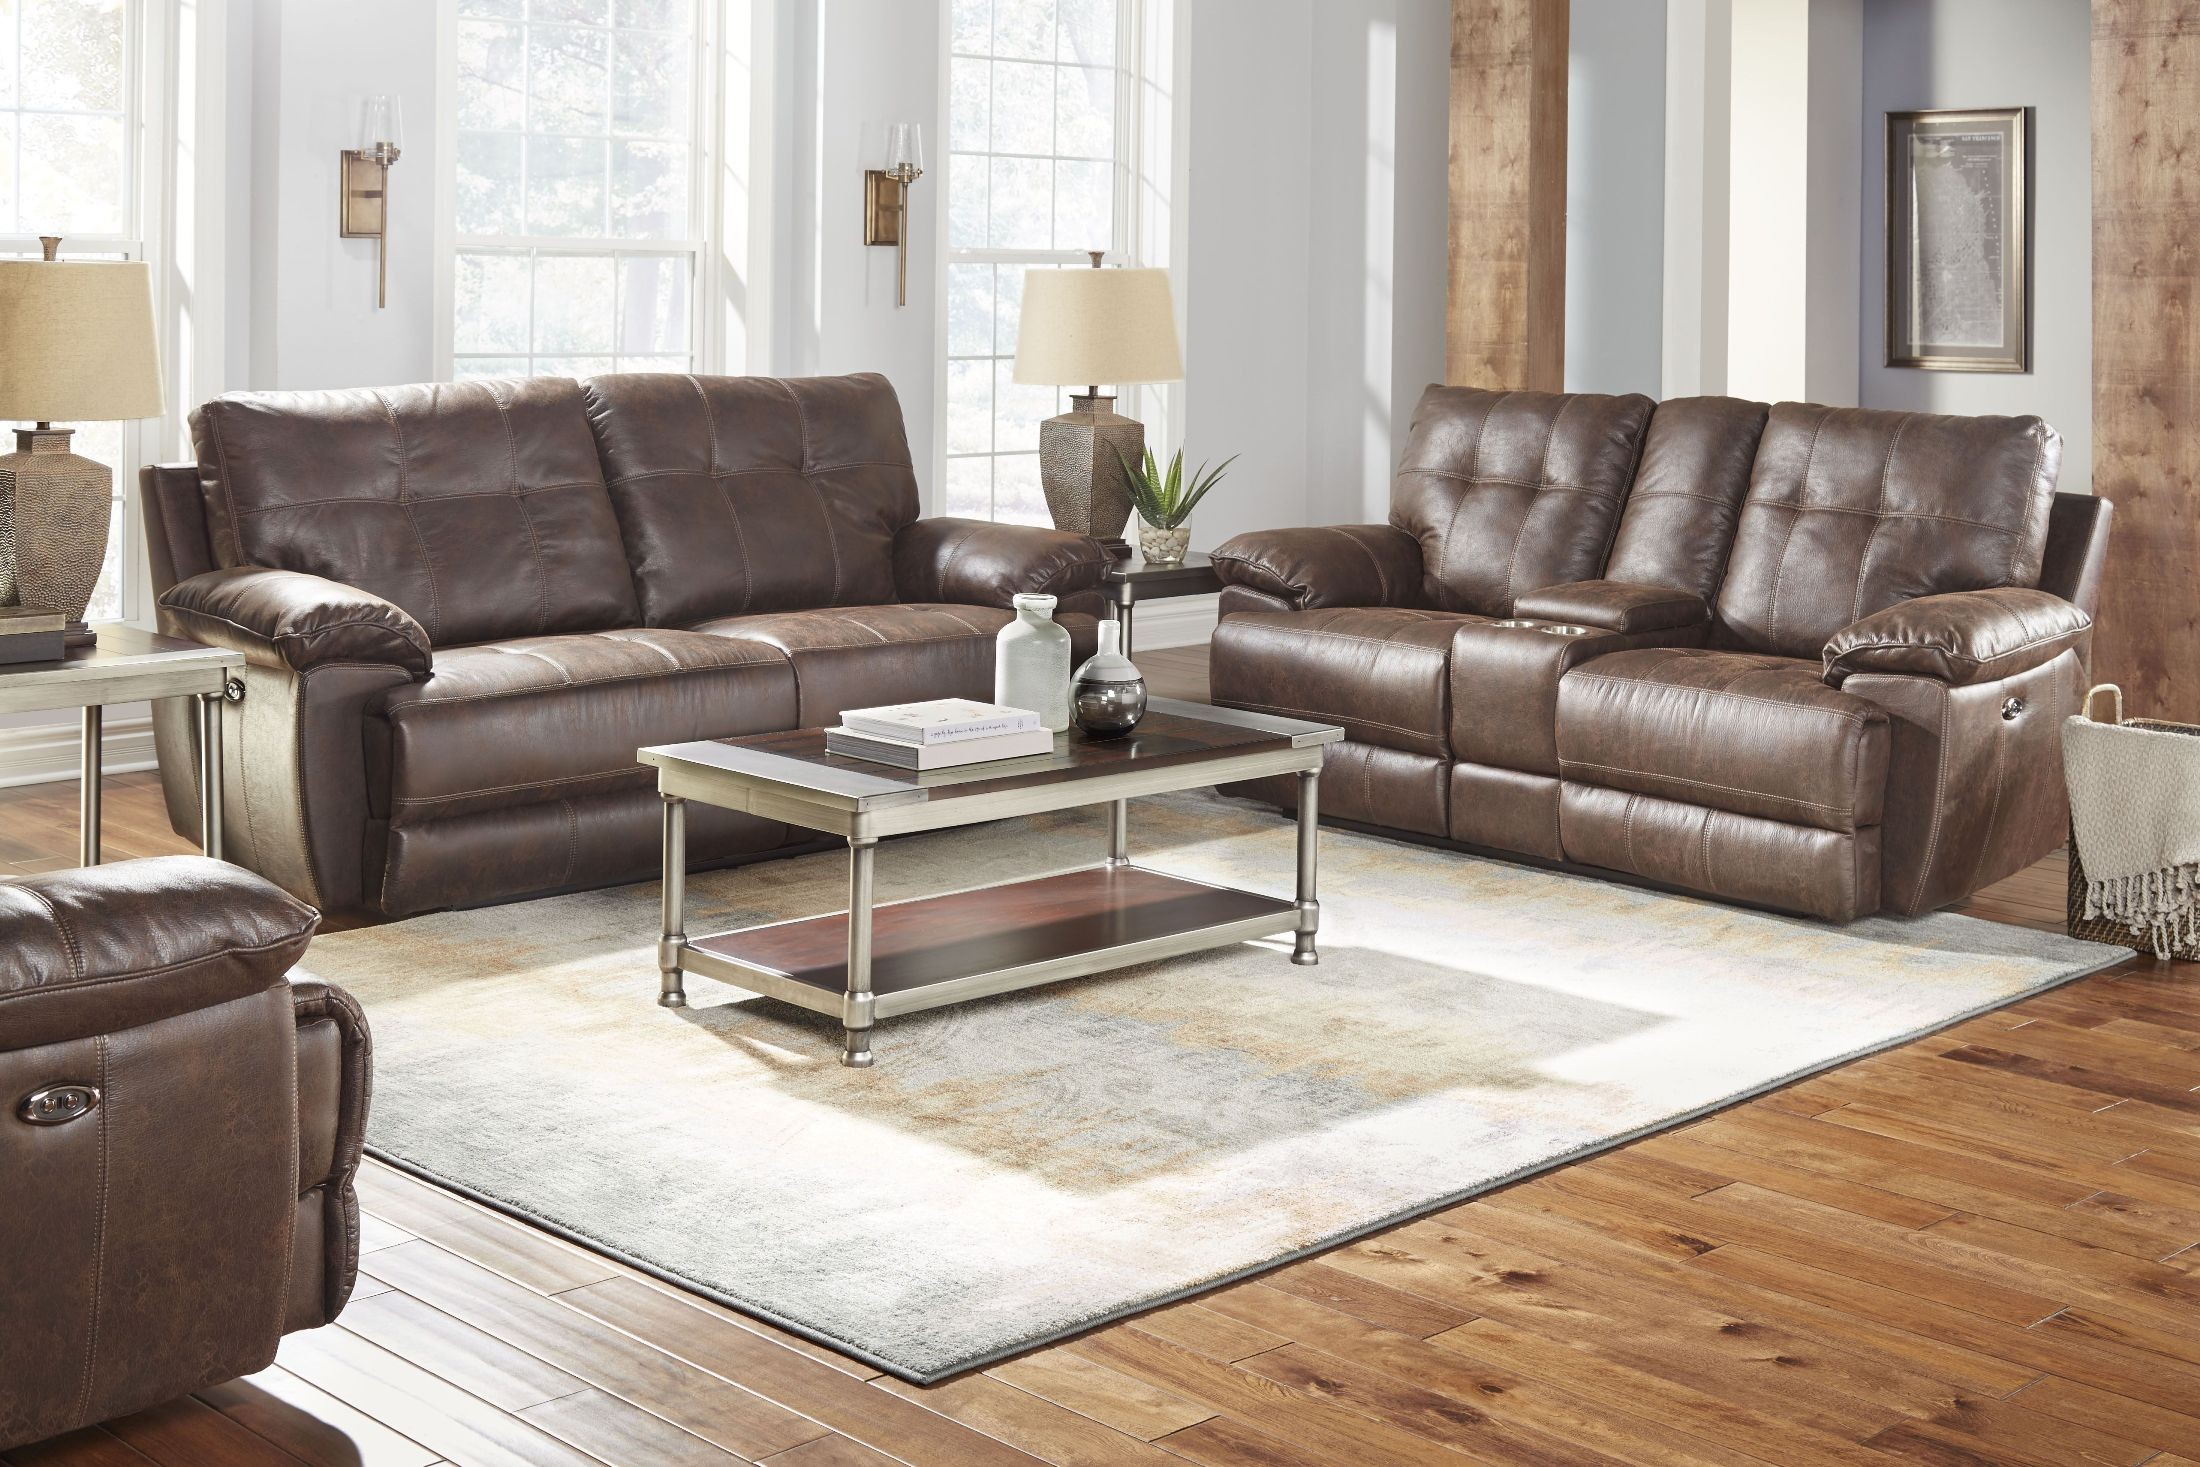 Hollister brown power reclining living room set from for Brown living room set